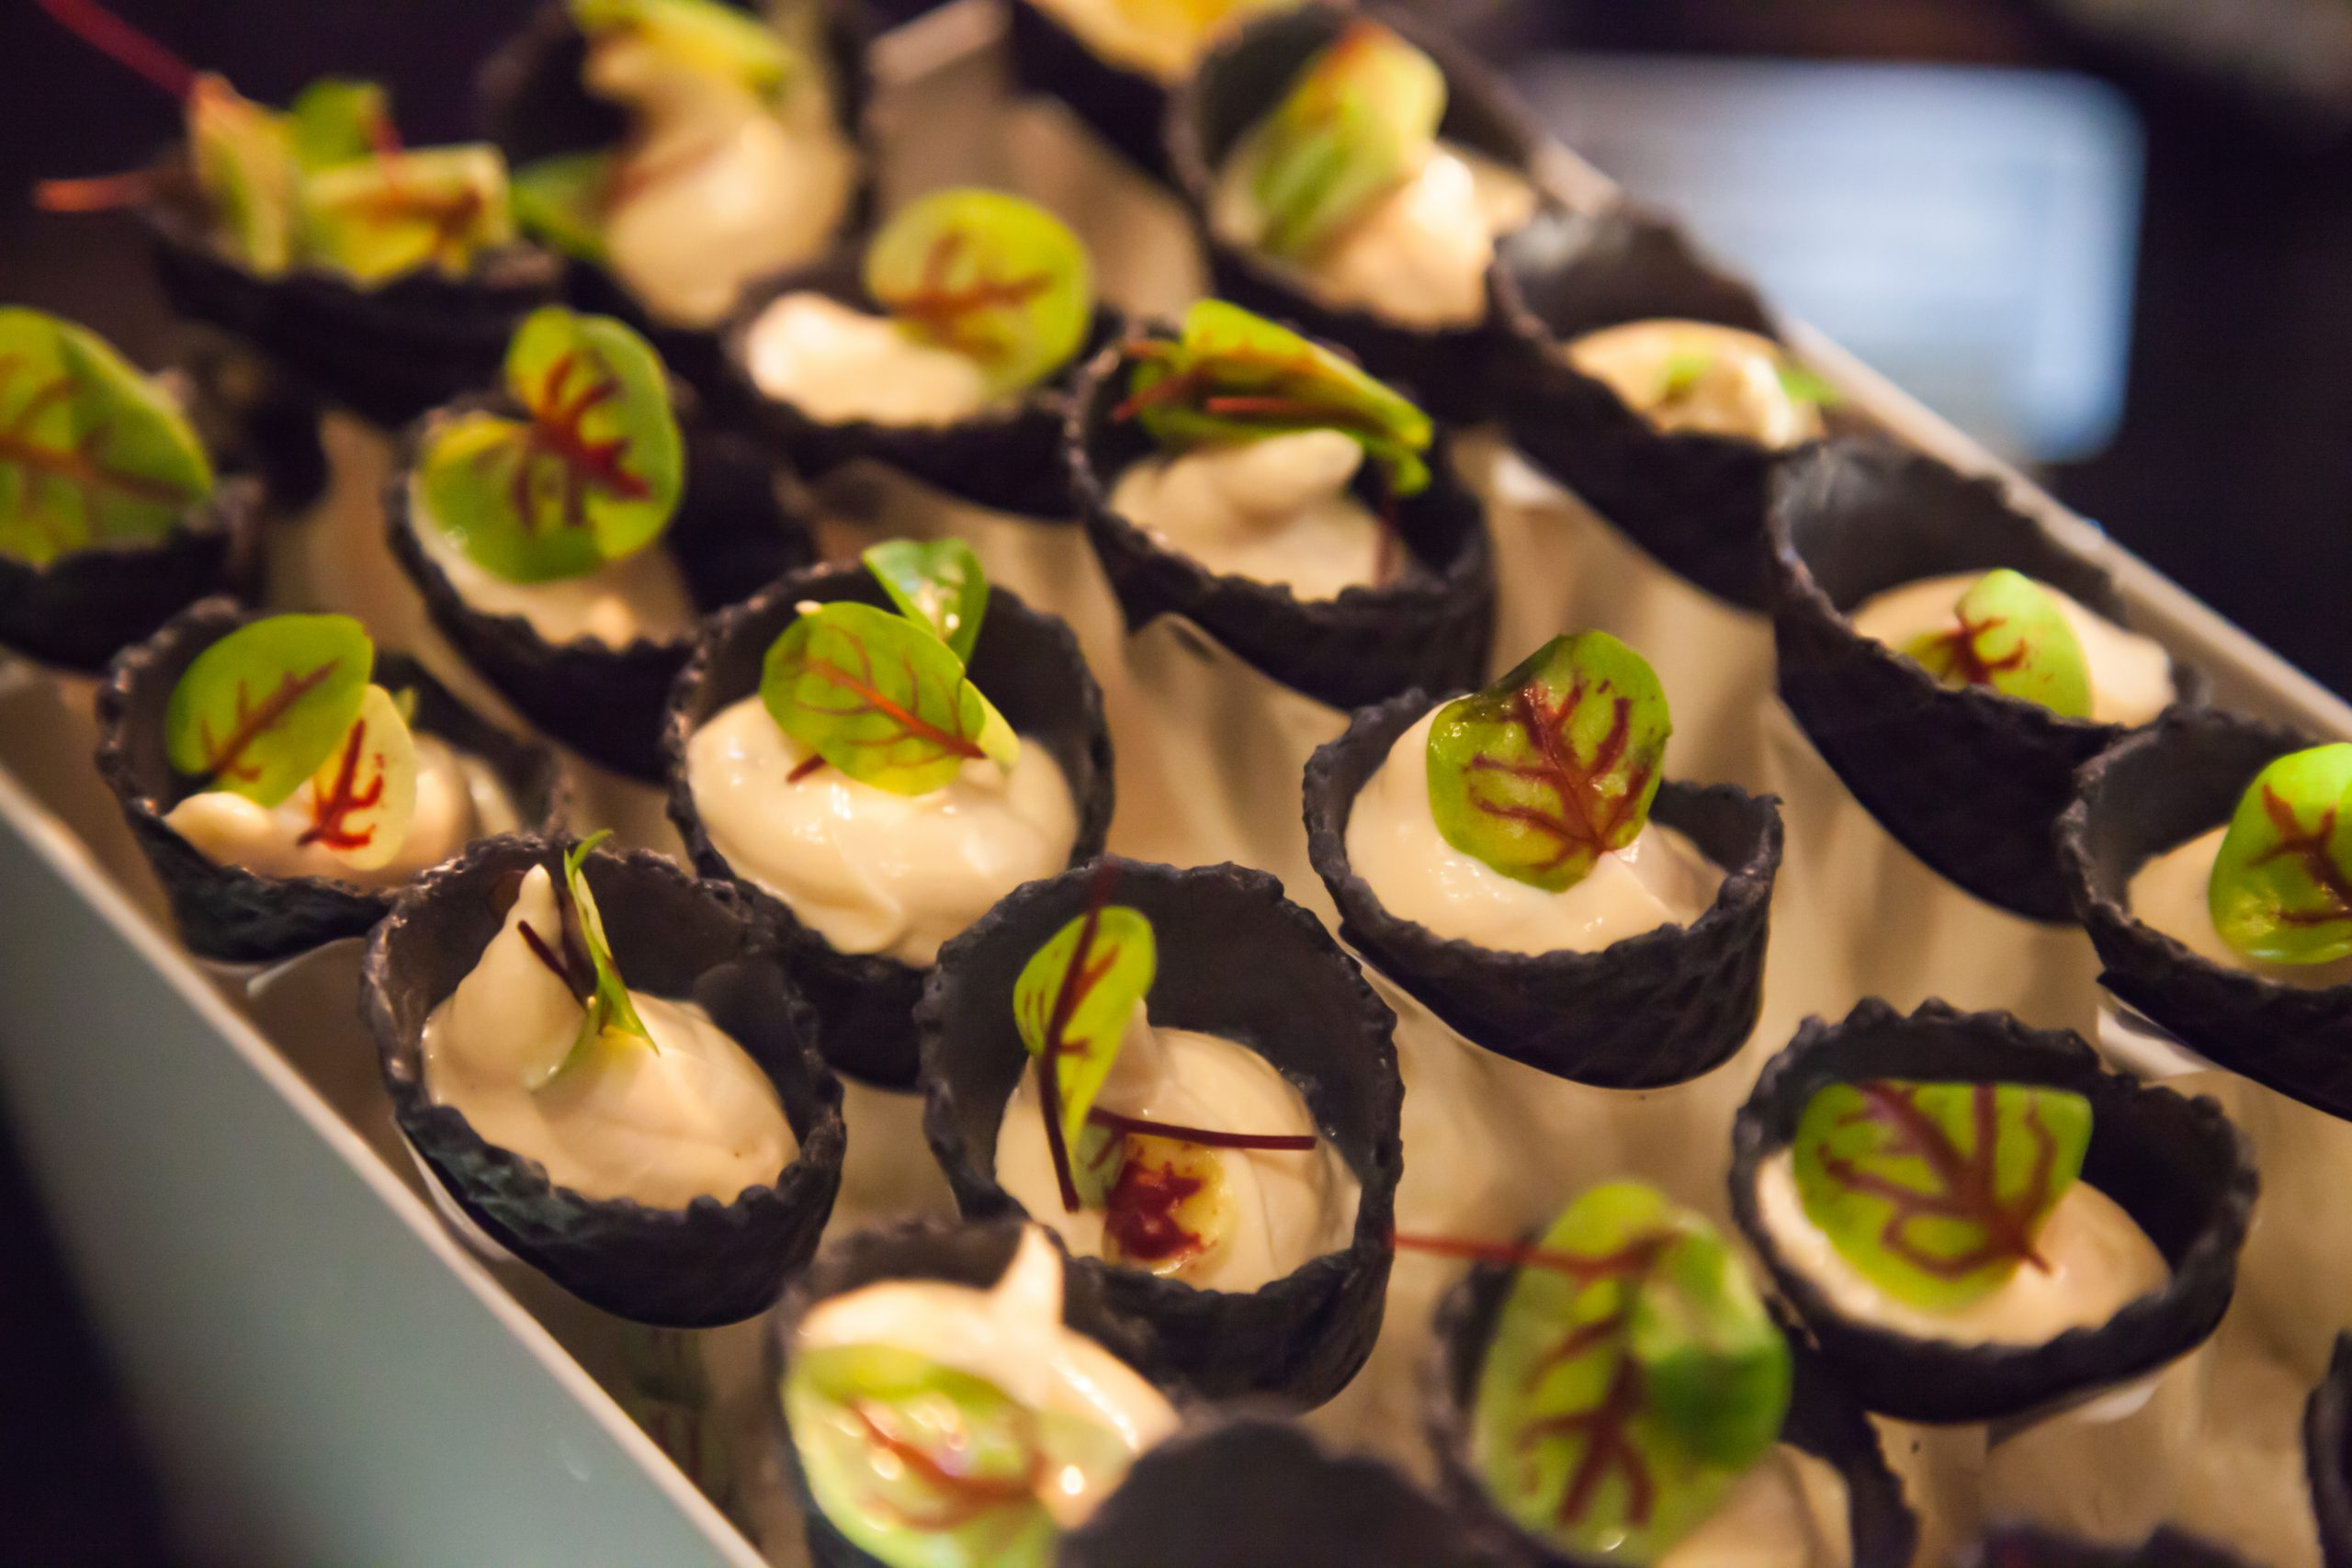 Taking the Stress Out of Choosing a Wedding Caterer